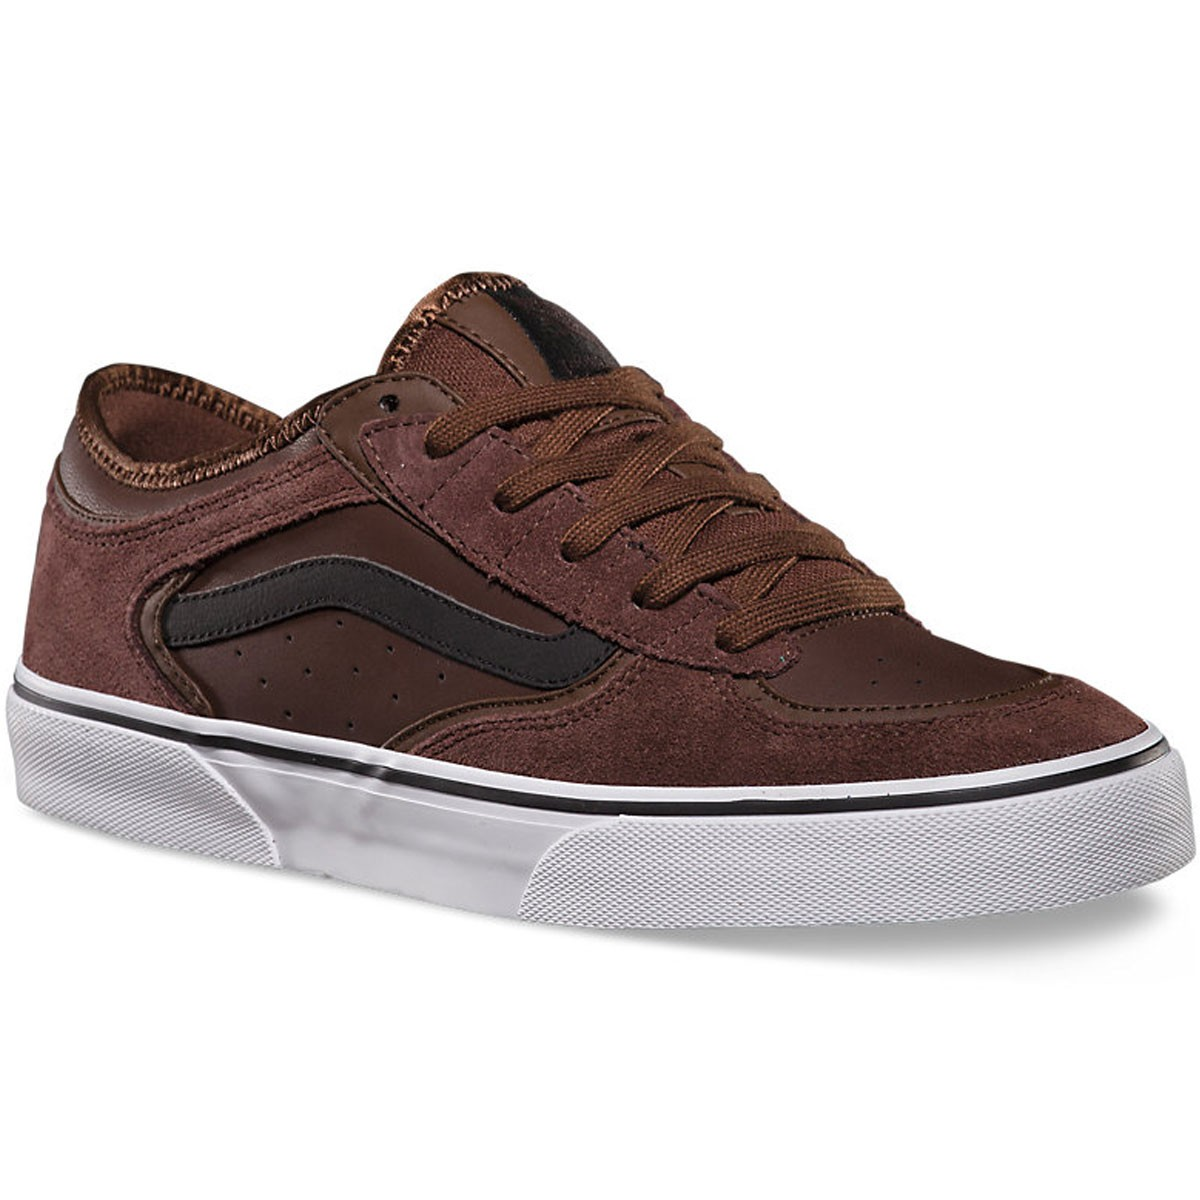 bb117b44f3 Vans Rowley Pro Shoes - Mahogany - 10.0